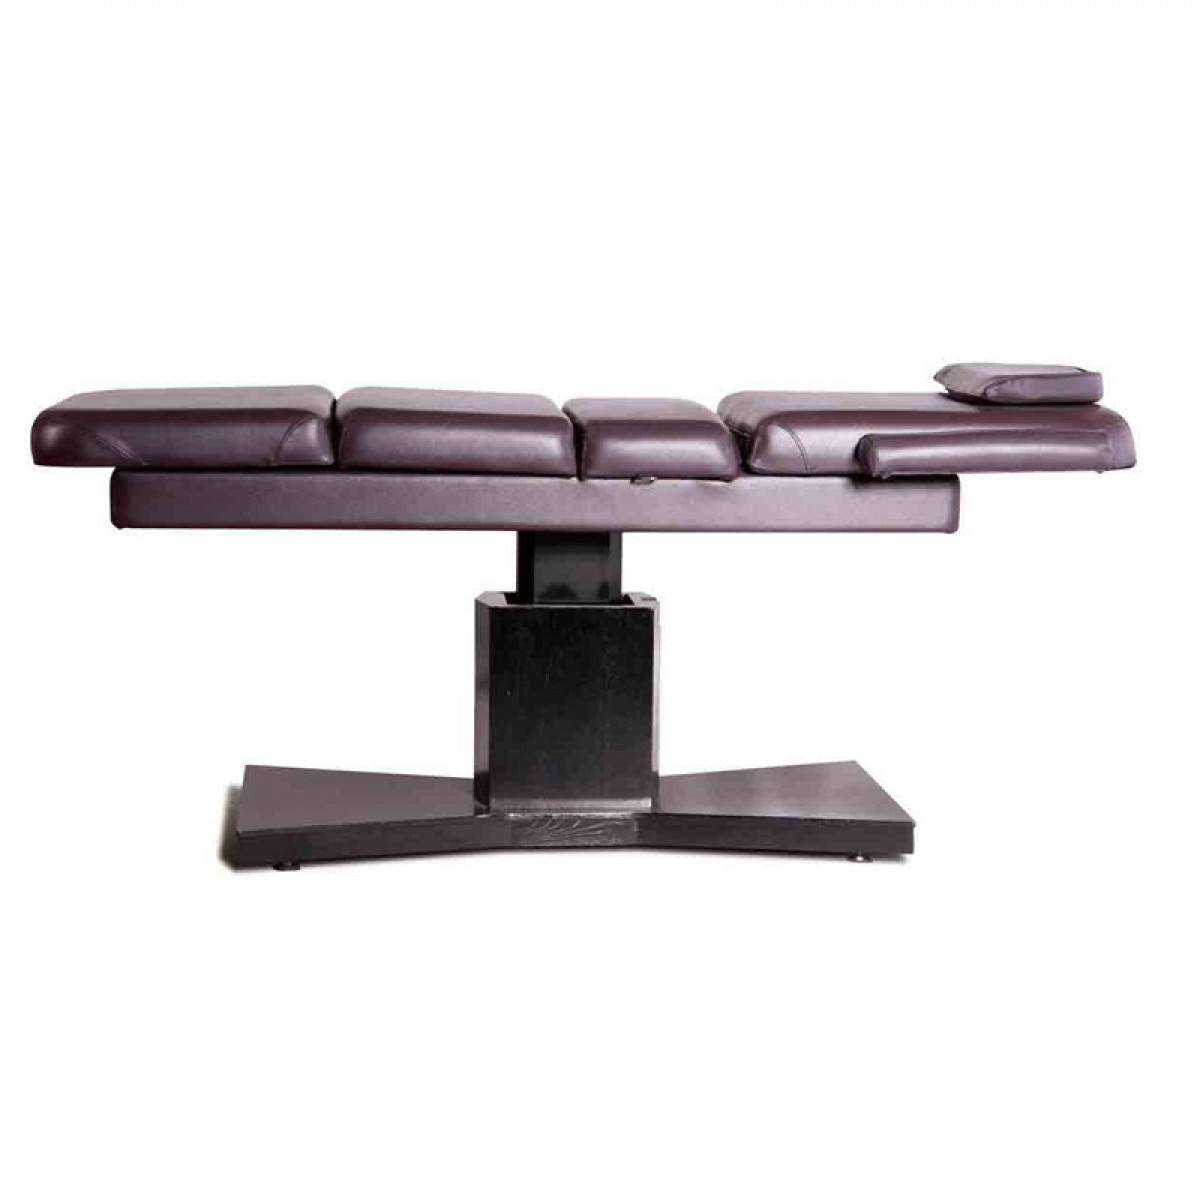 High quality stong spa couch wooden thai acupressure massage bed for beauty salon